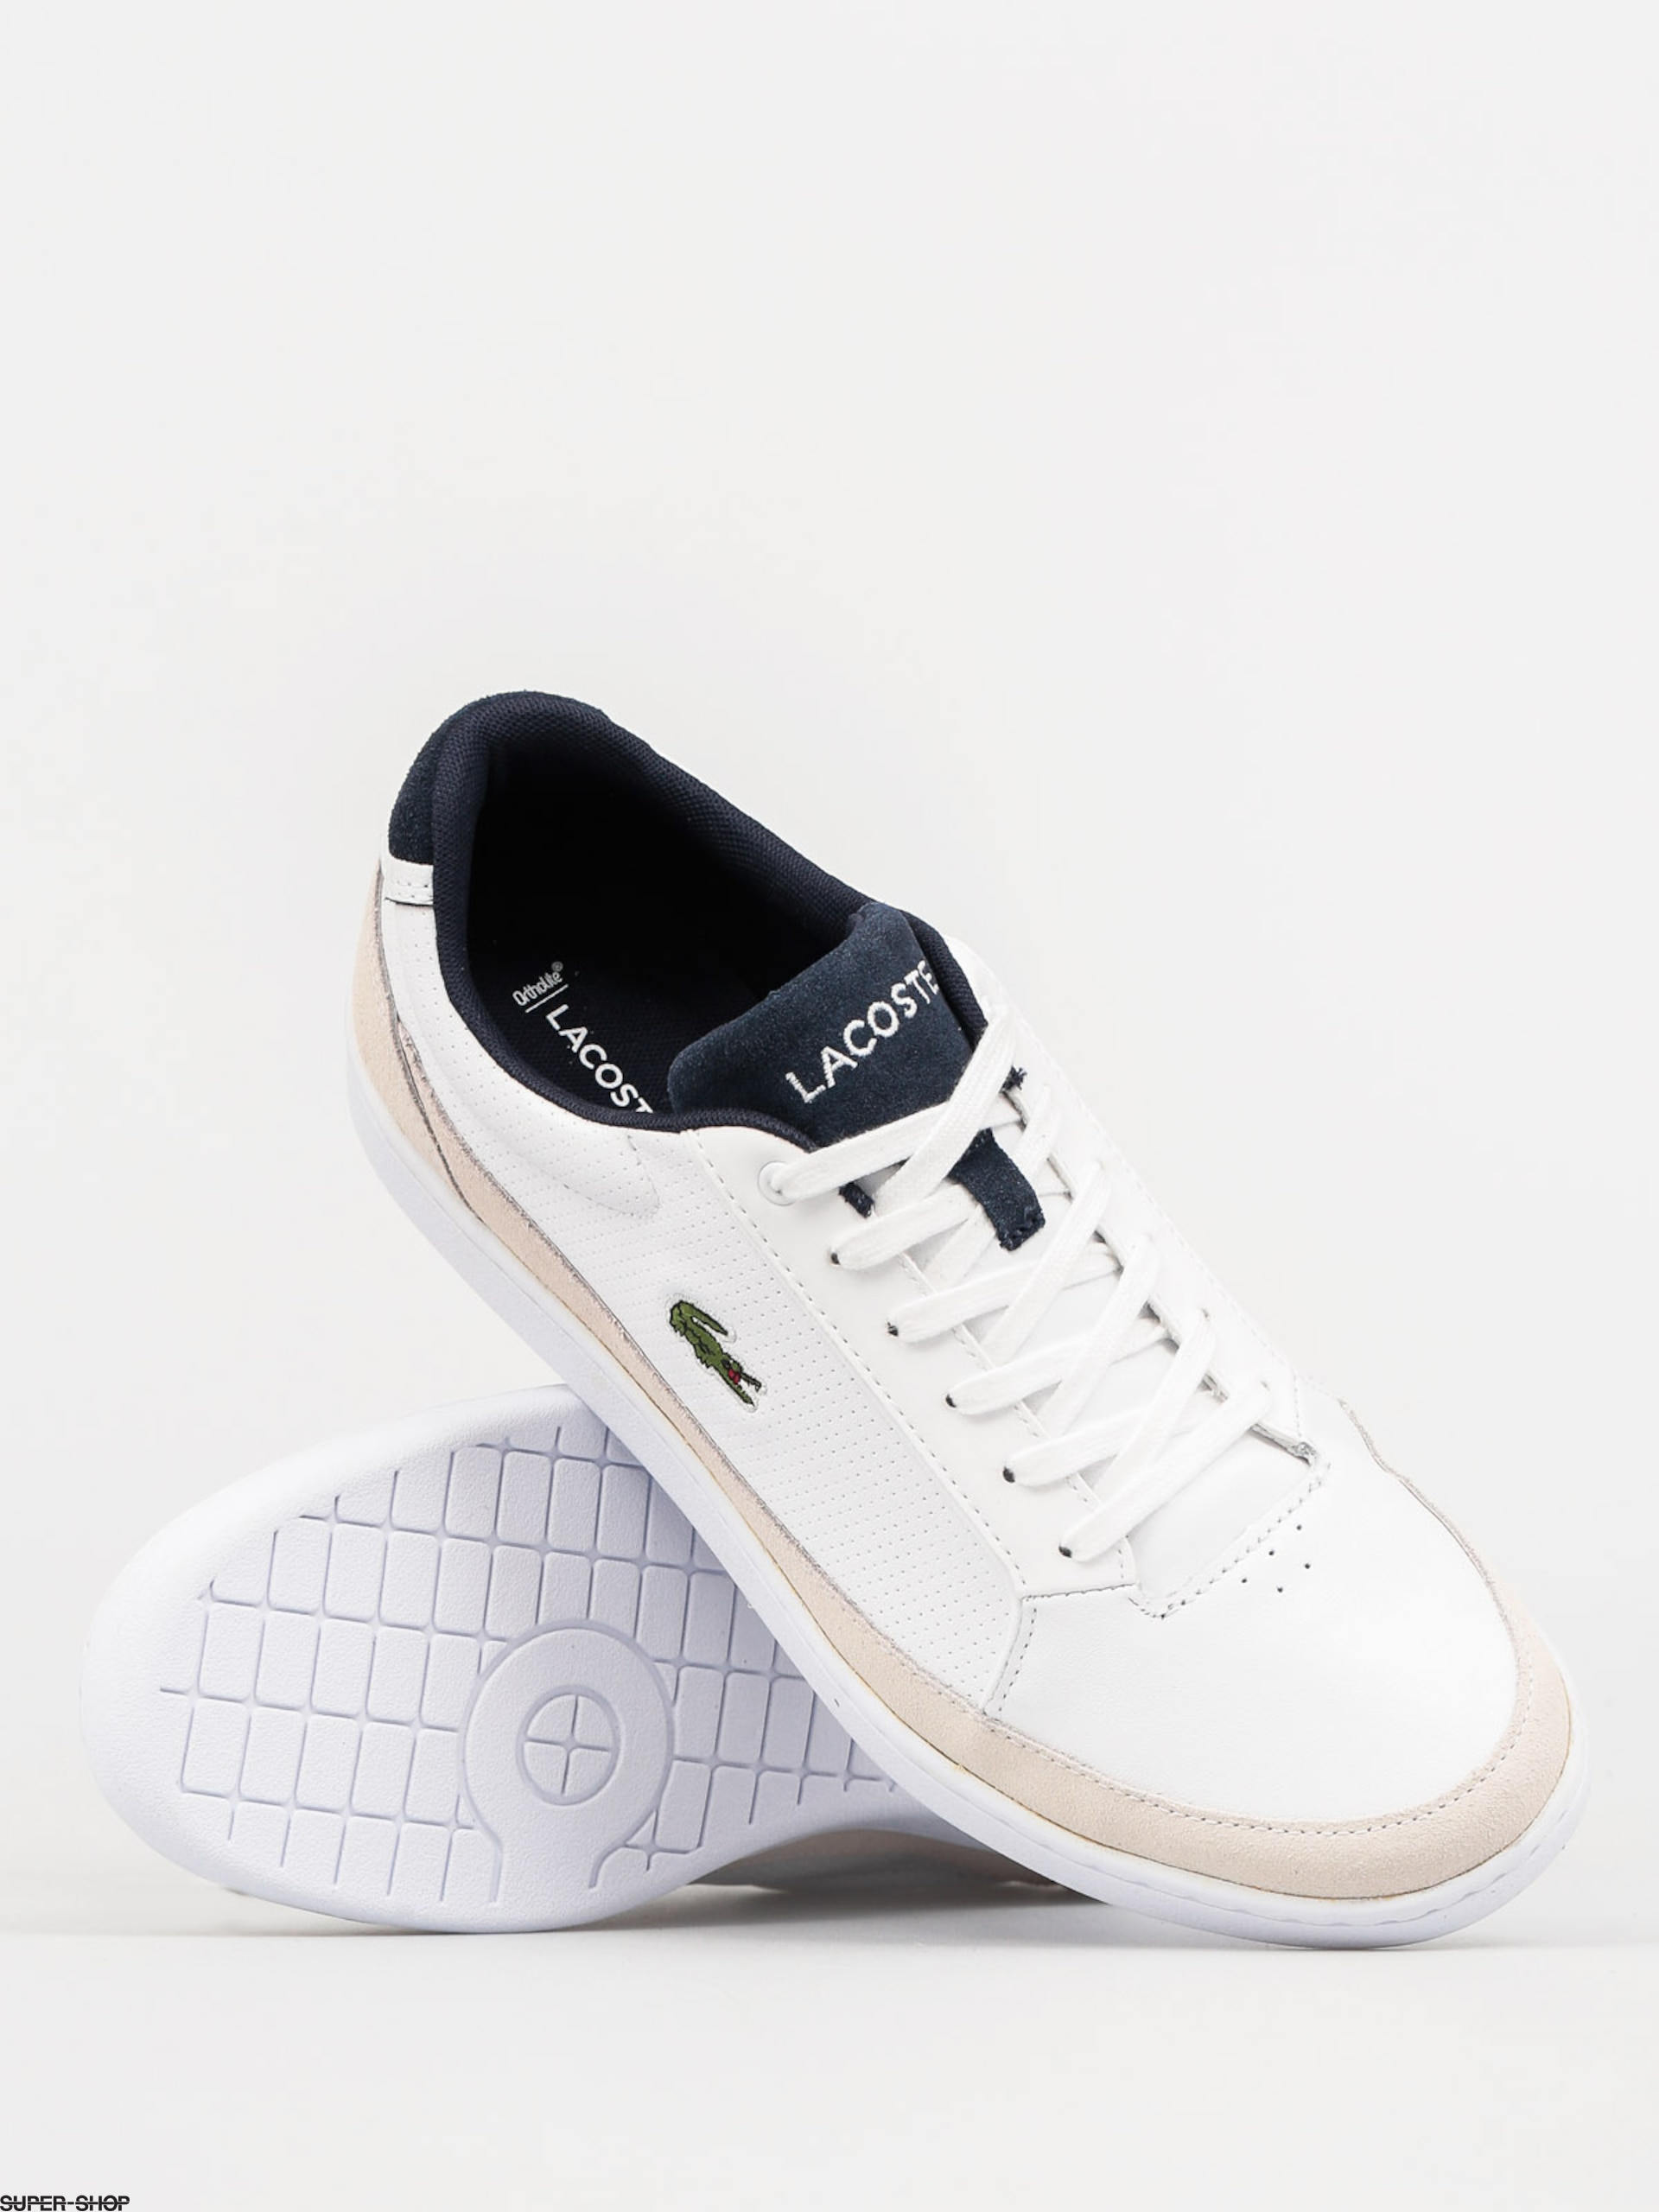 1ca97602ddf9 Lacoste Shoes Setplay 117 1 Spm (white leather suede)